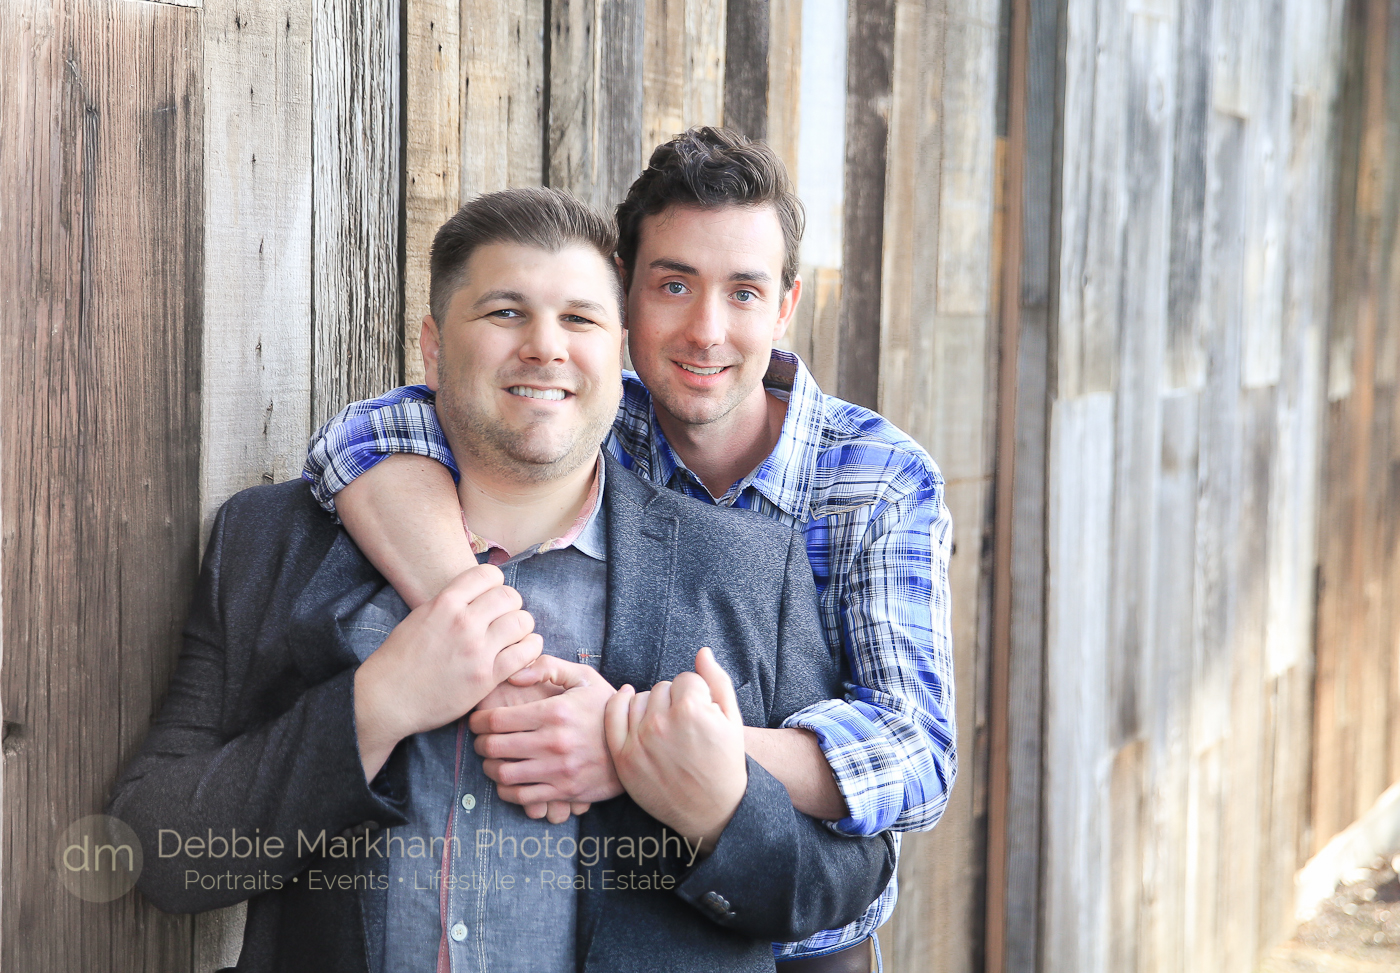 Two Men_Portrait_Gay_Couple_Engagement_Photos_Country_Small Town_Destination_California_Photographer-1077